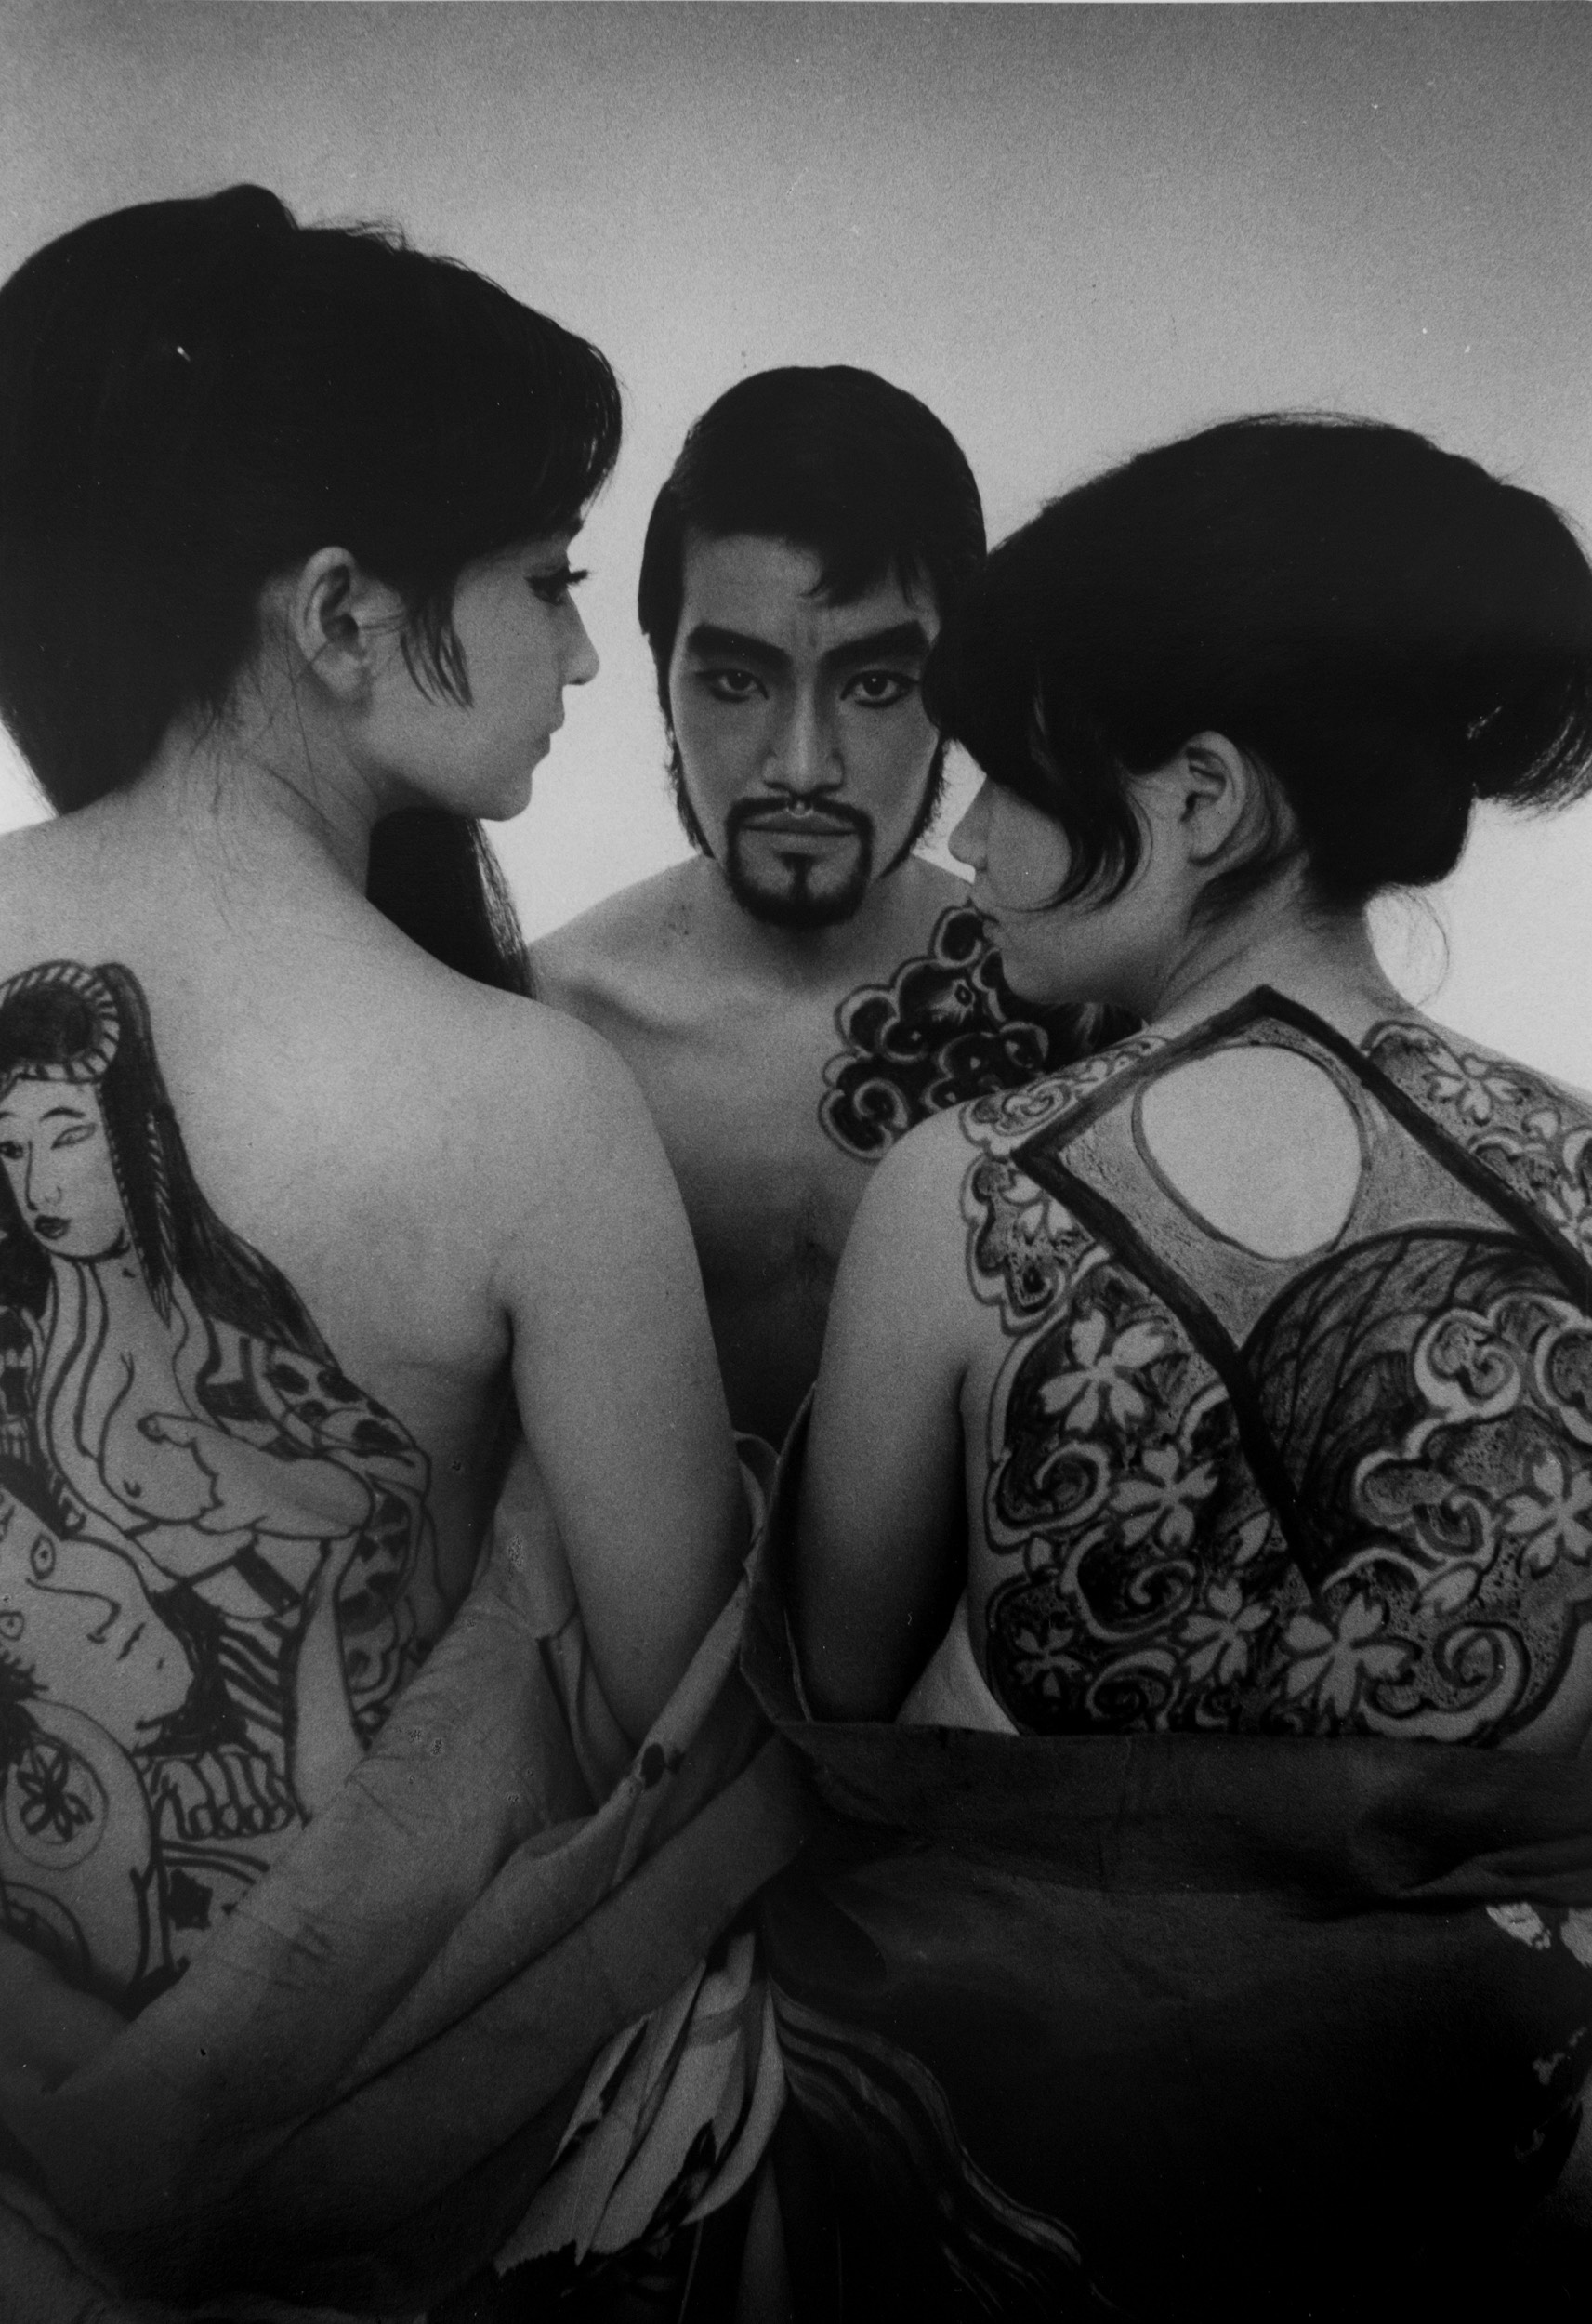 Tenjo Sajiki theater group, 1968 (drawings on womens backs and man)